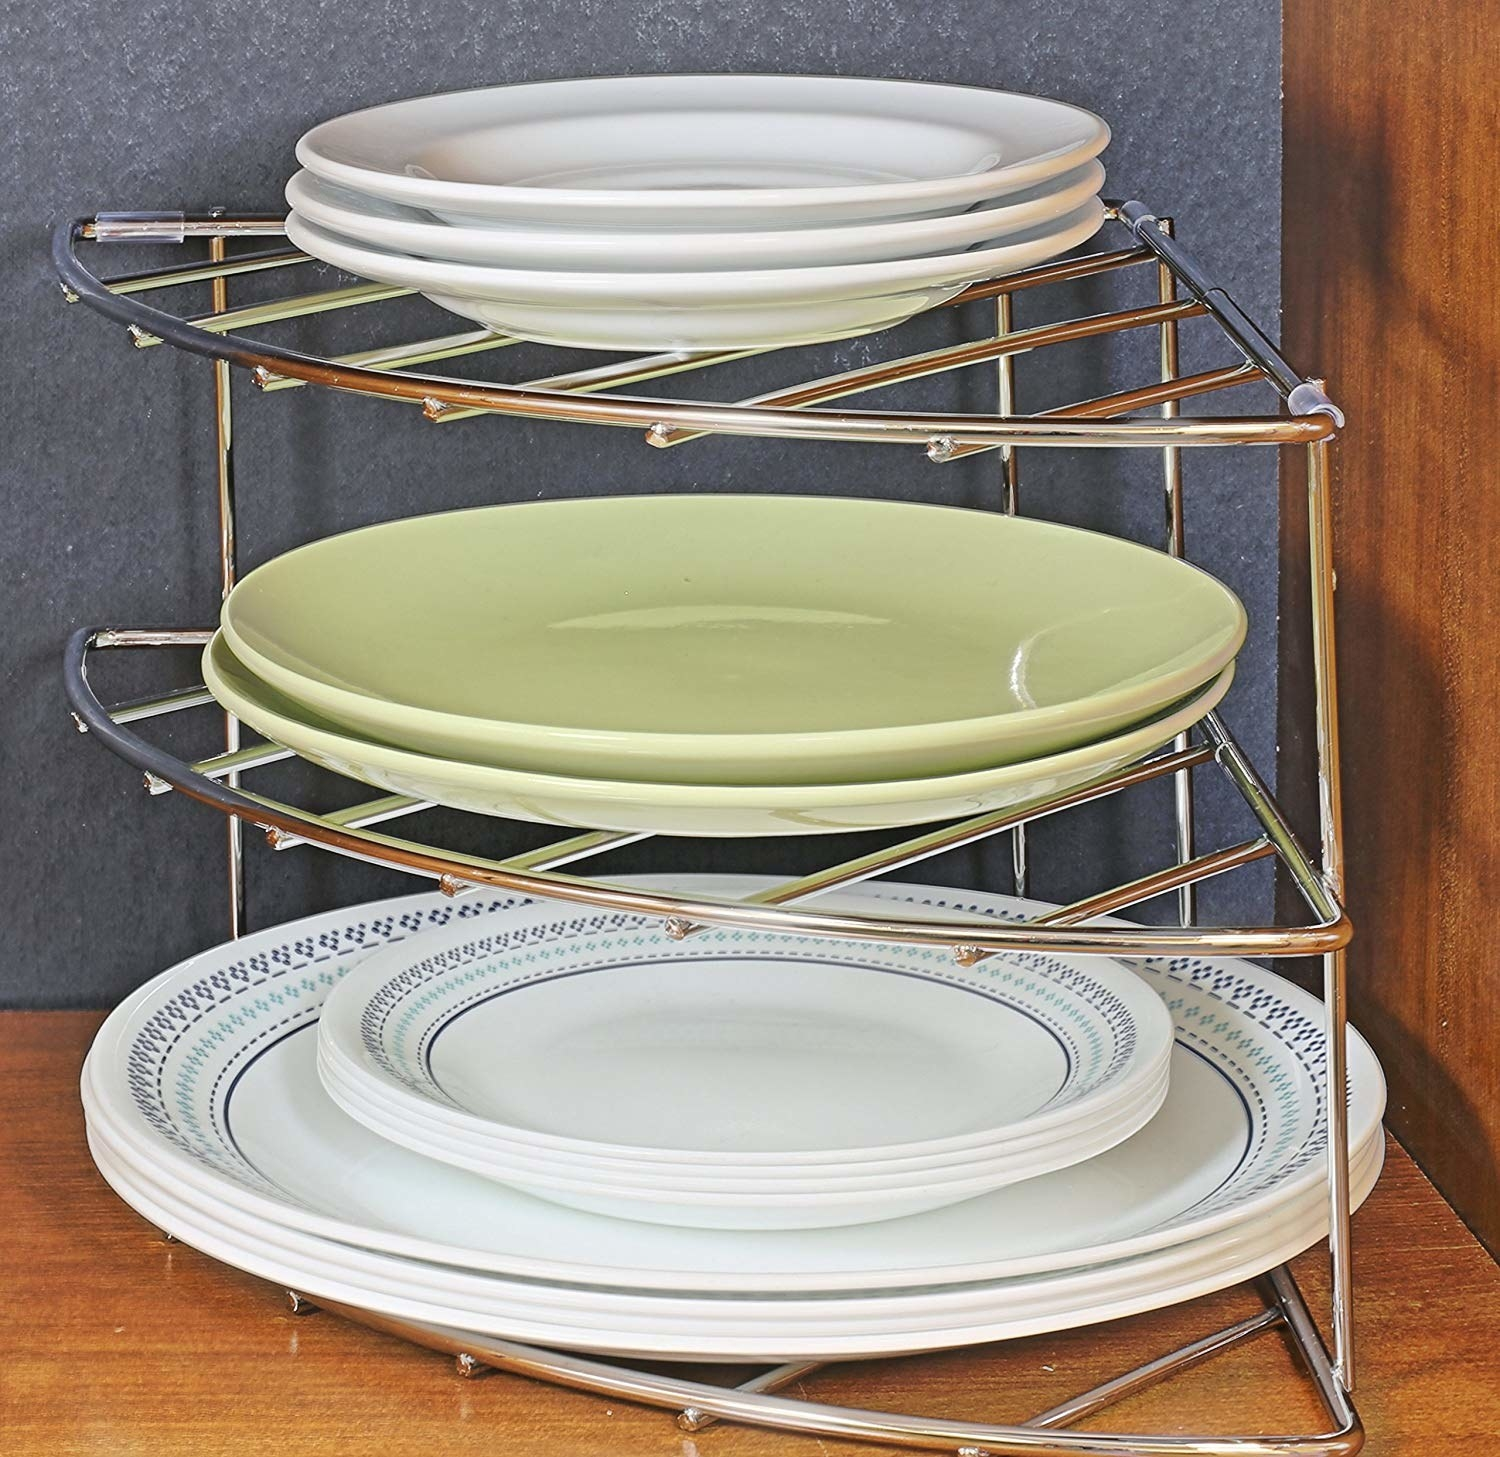 Three-tier silver metal organizer with different sized plates on each shelf